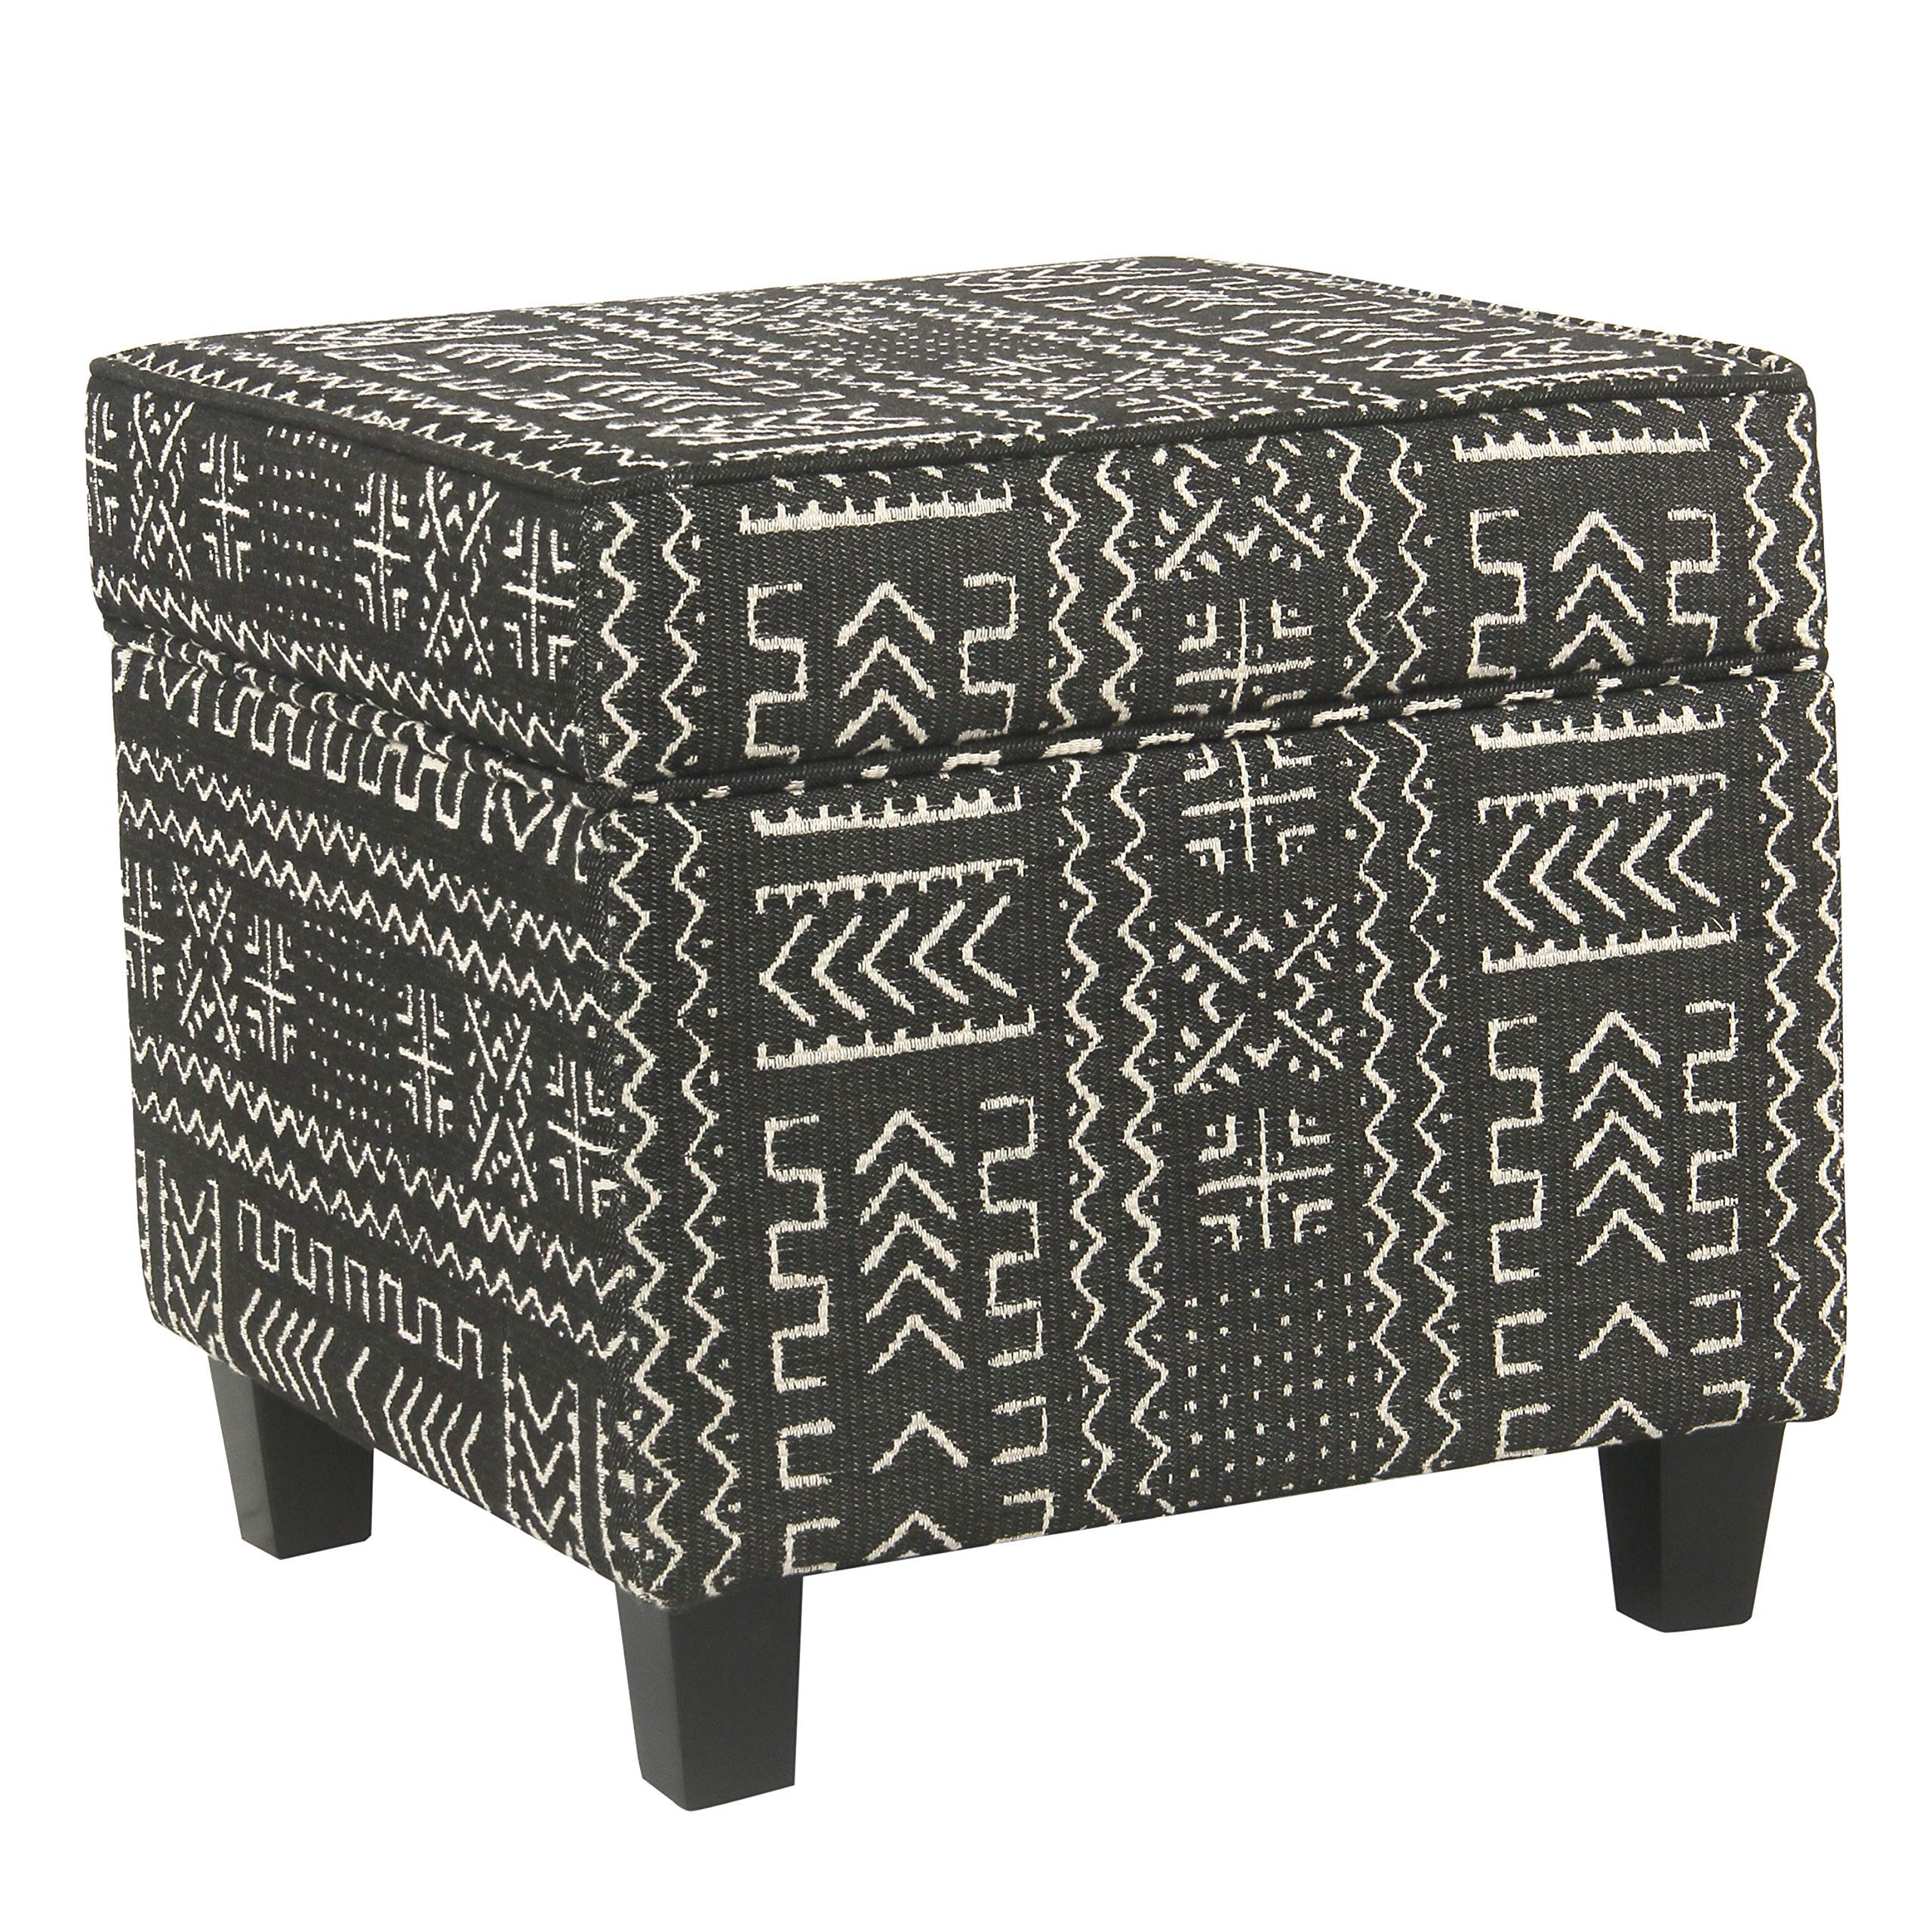 HomePop Square Storage Ottoman with Lift Off Lid, Onyx (Renewed) by HomePop